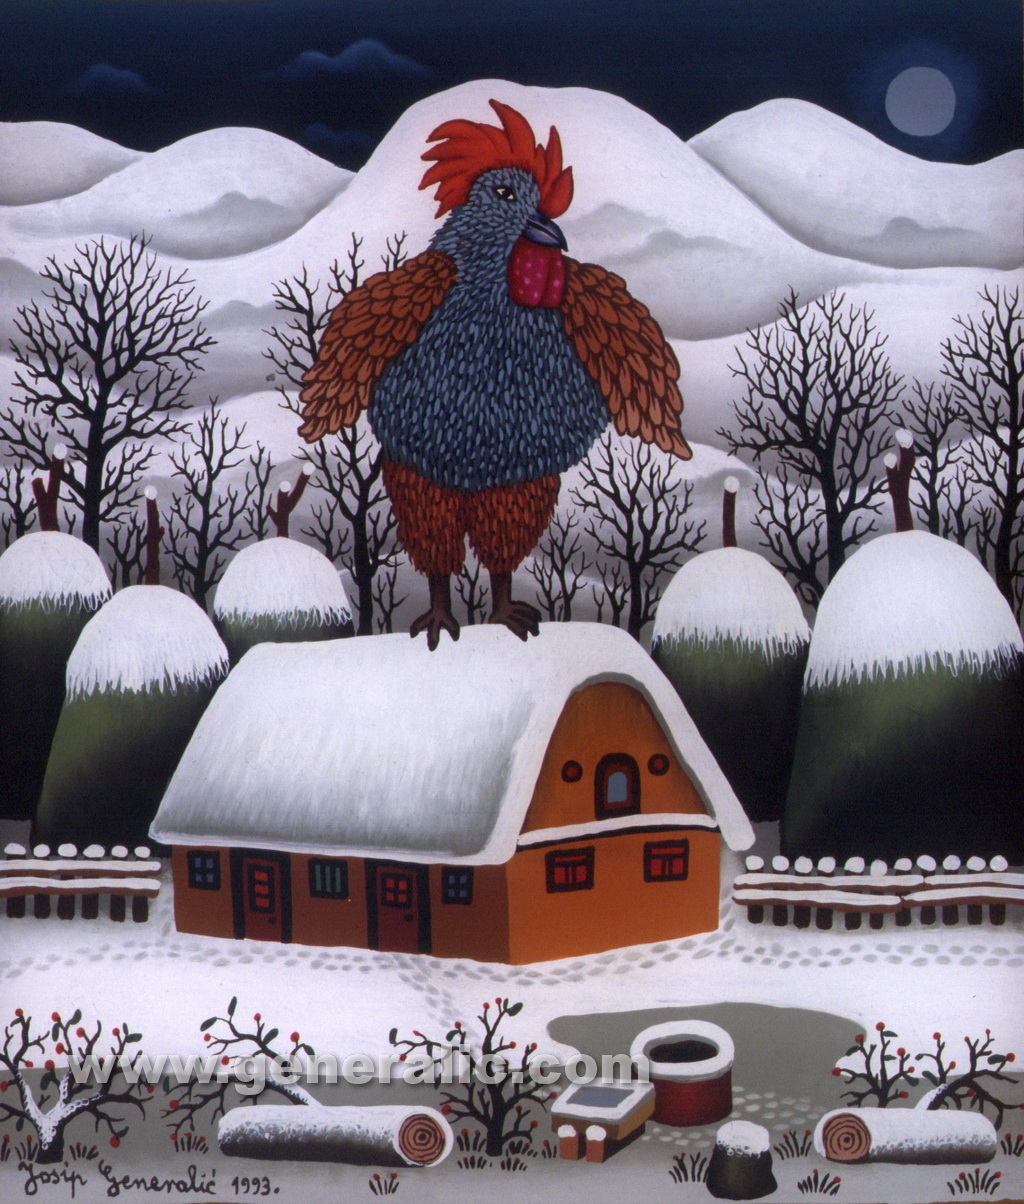 Josip Generalic, 1993, Rooster on a roof, oil on glass